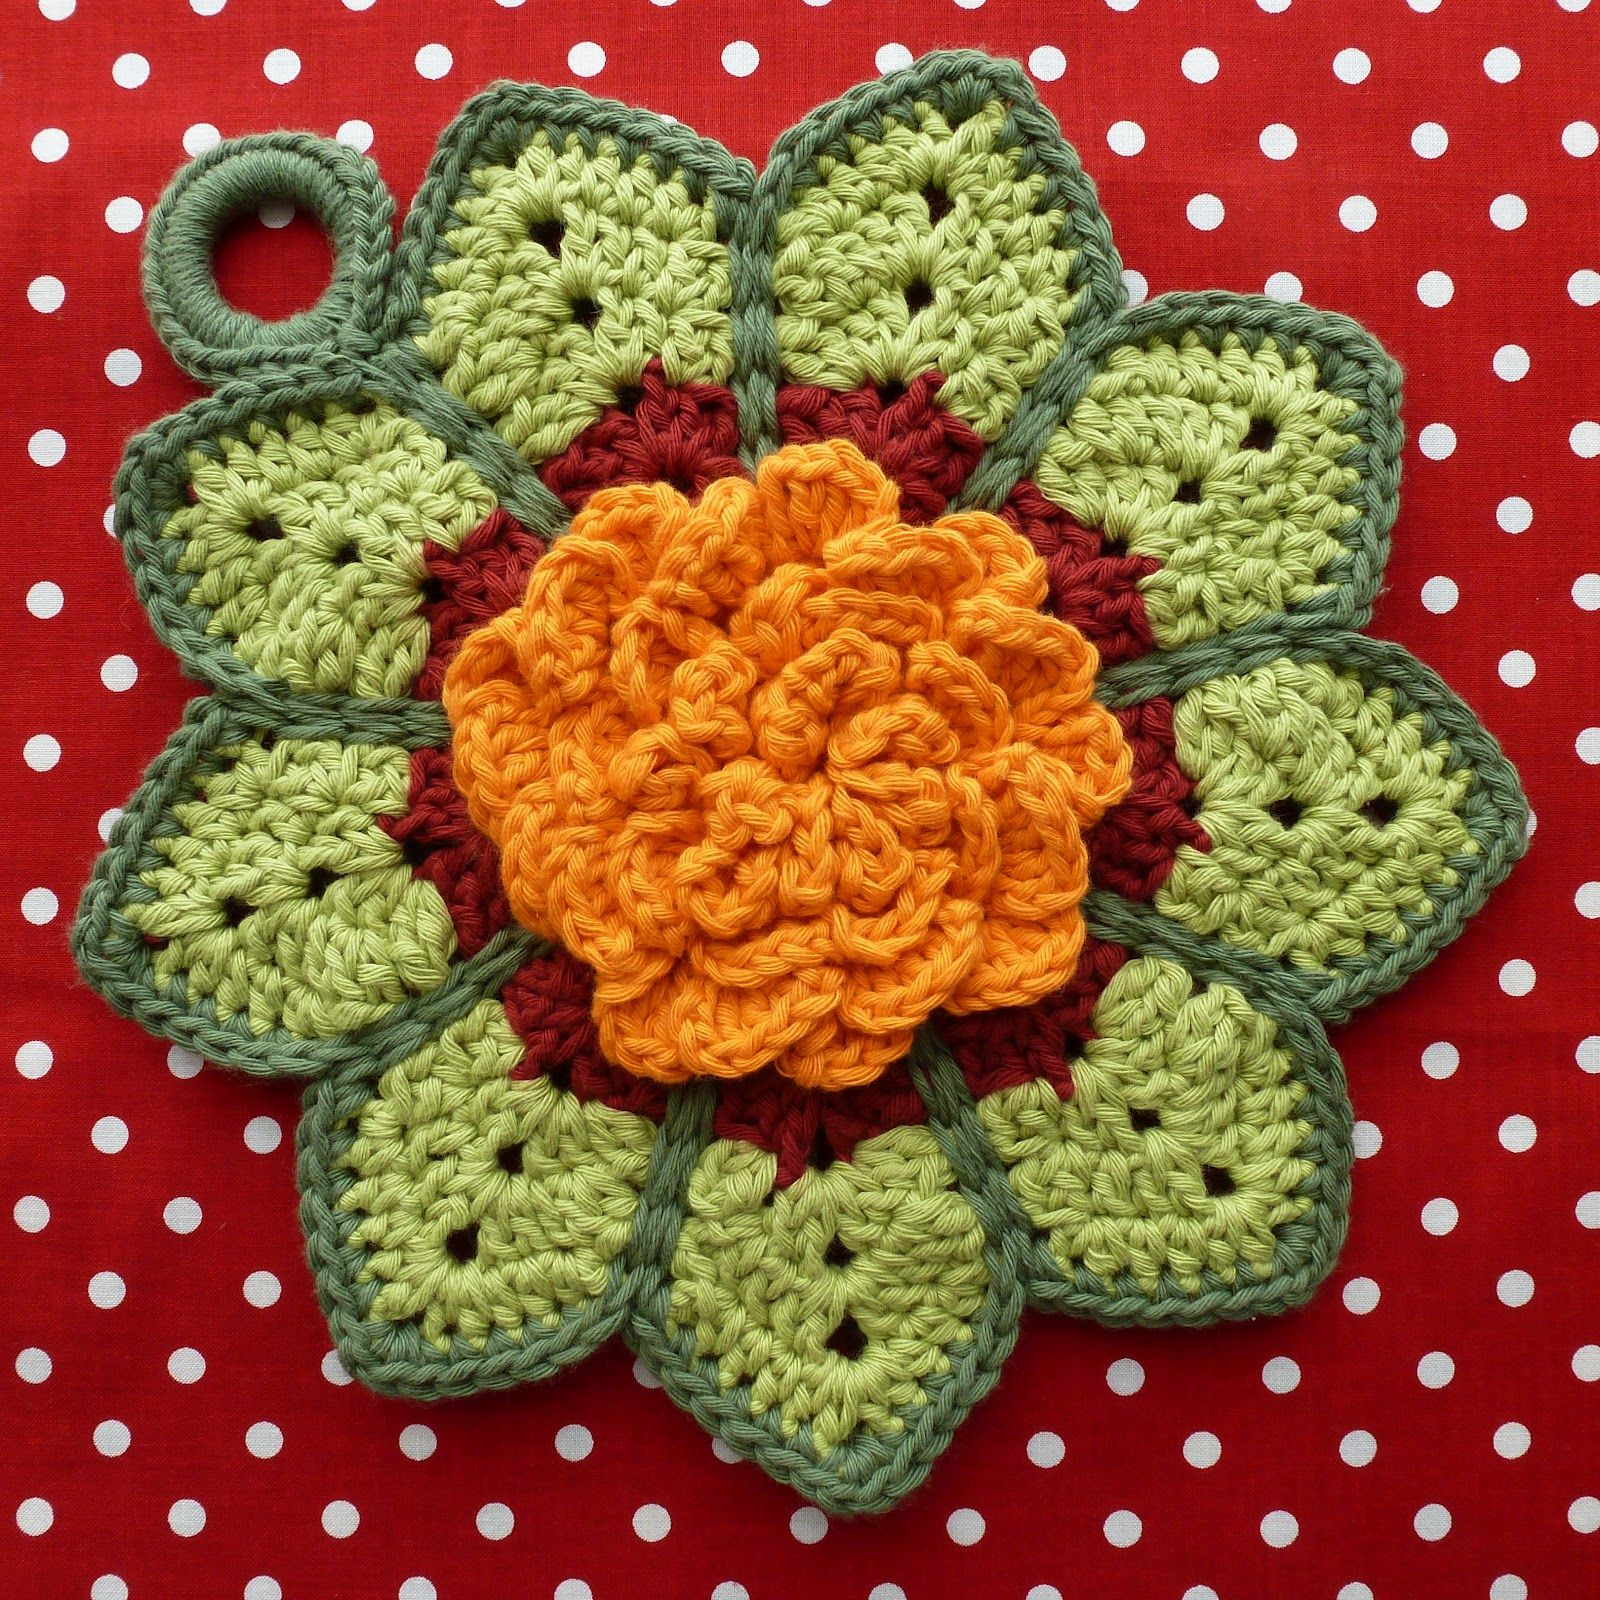 Link to free pattern from Delight-Gems for \